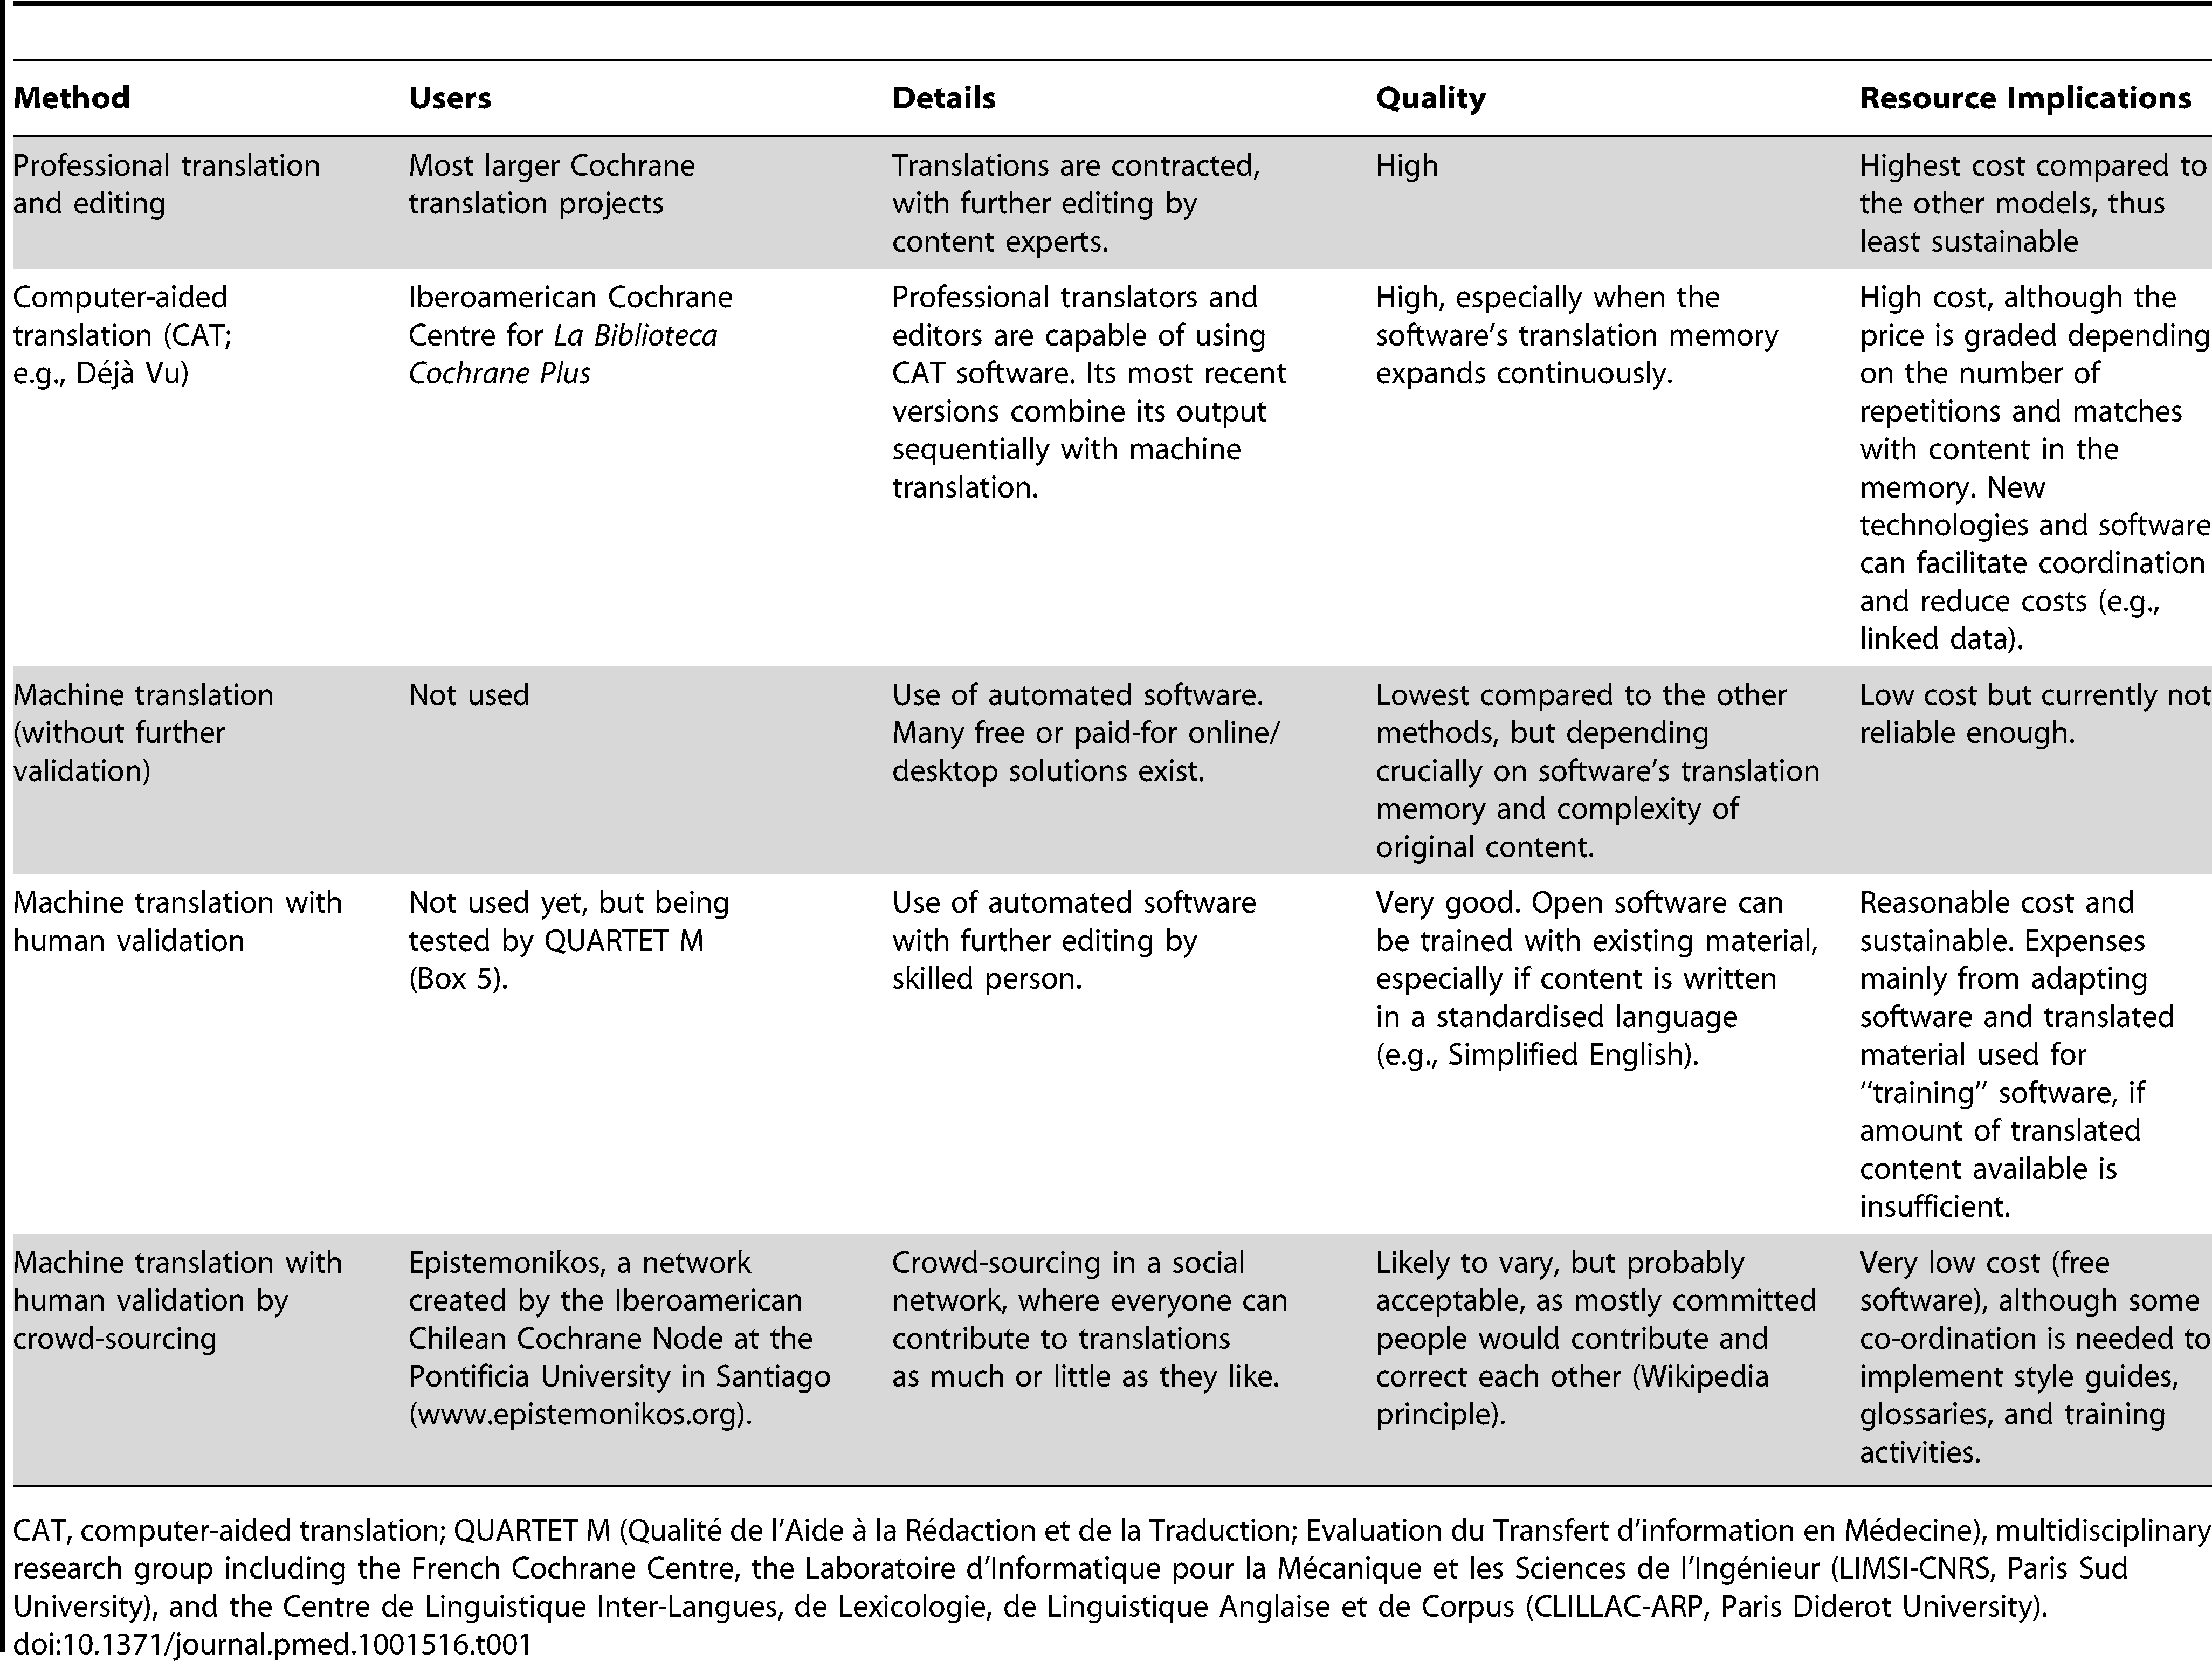 Methods for Translation of Cochrane Reviews and Related Content.